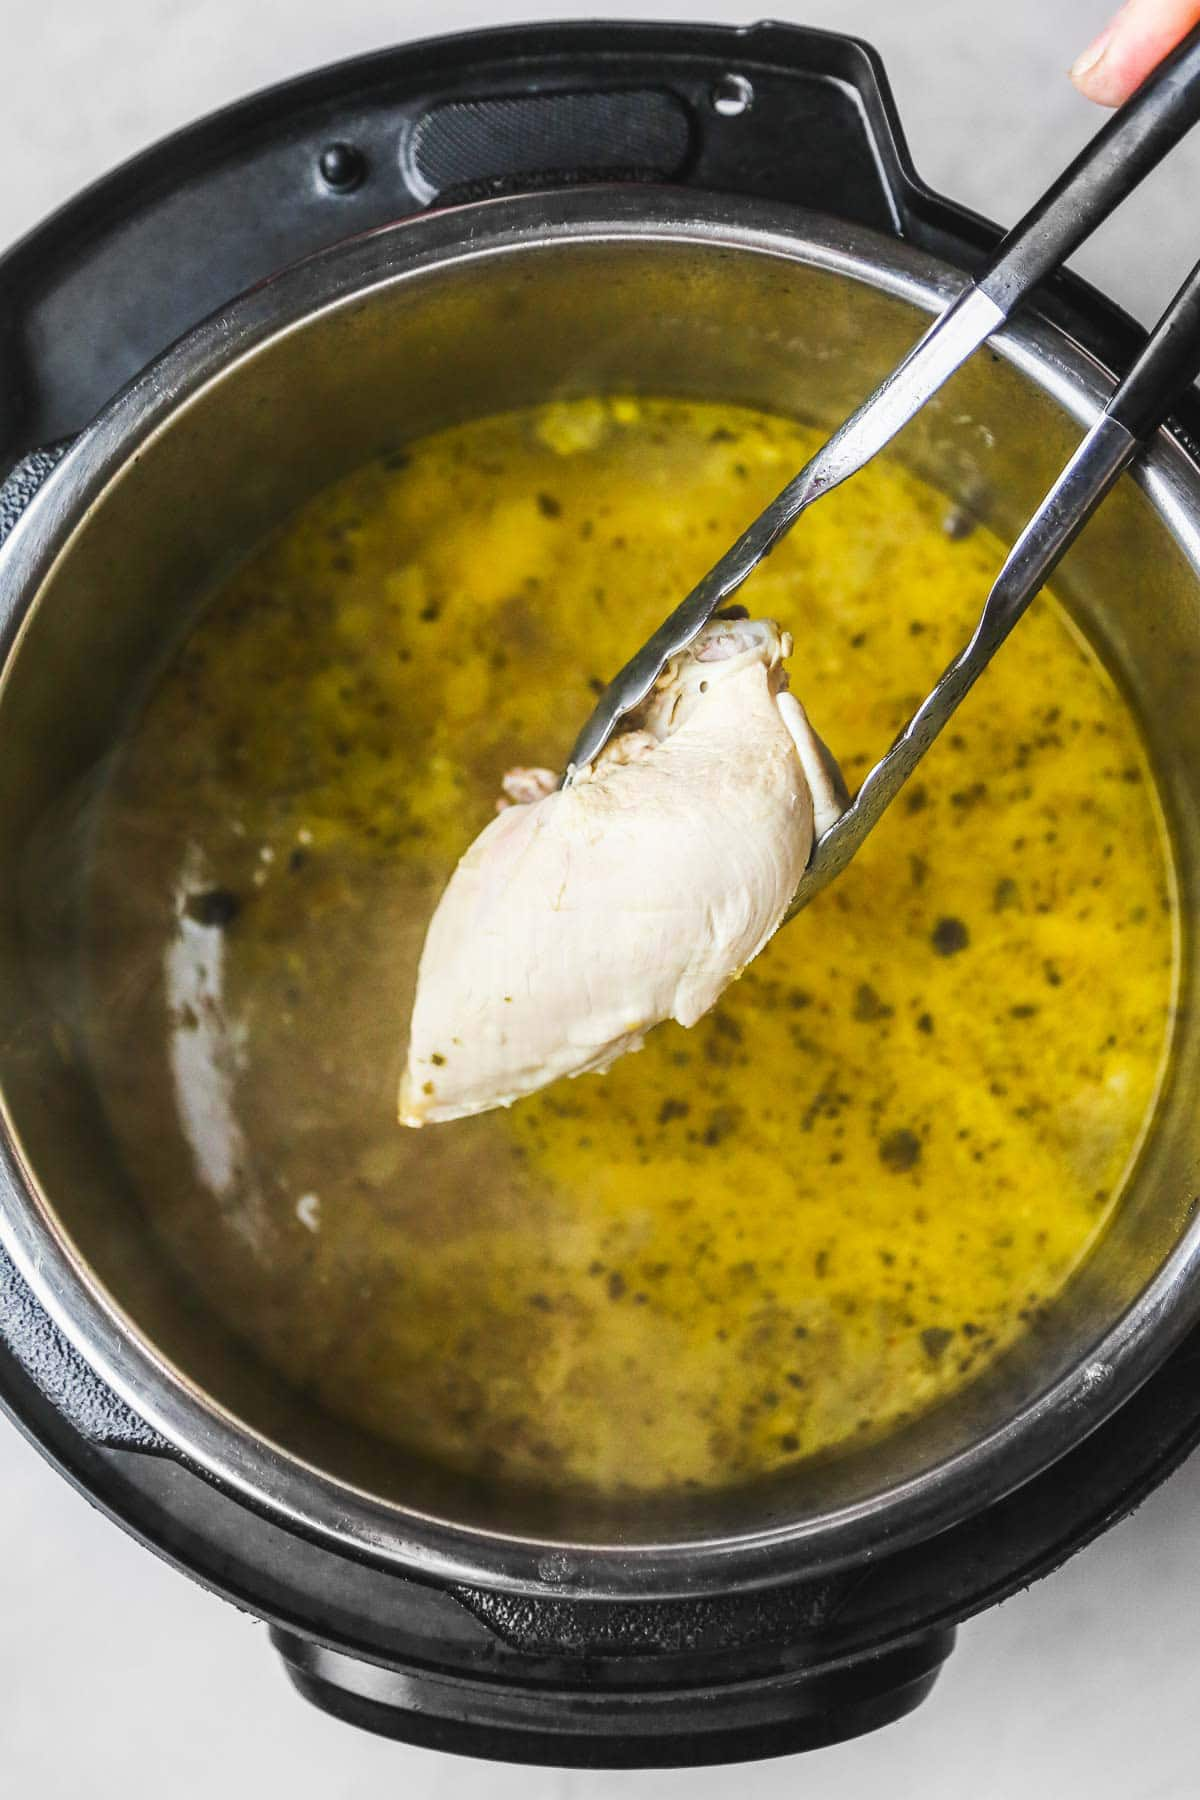 Taking the chicken out of the Instant Pot